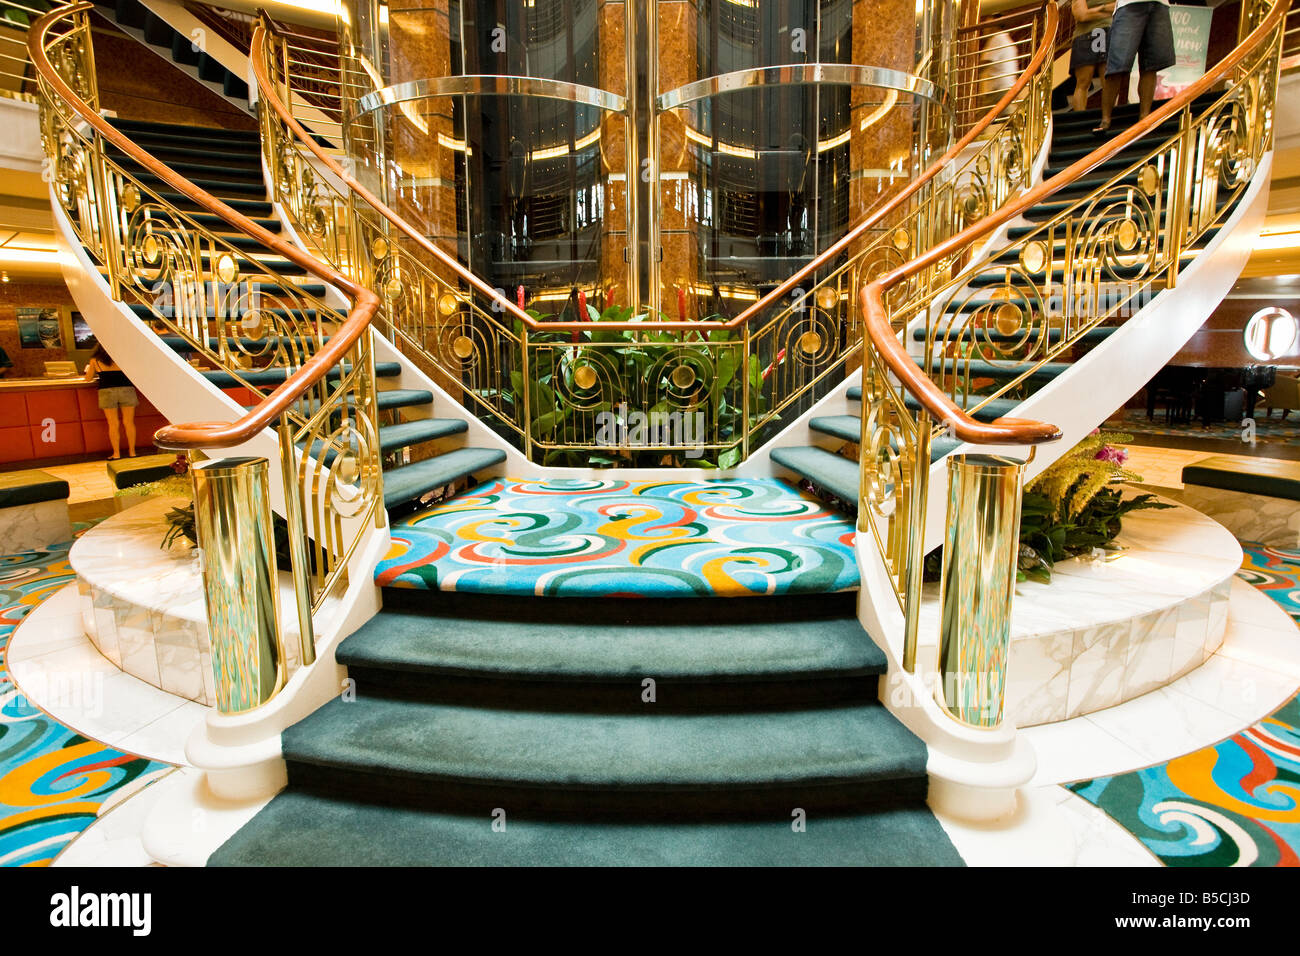 Image result for modern cruise ship main staircase